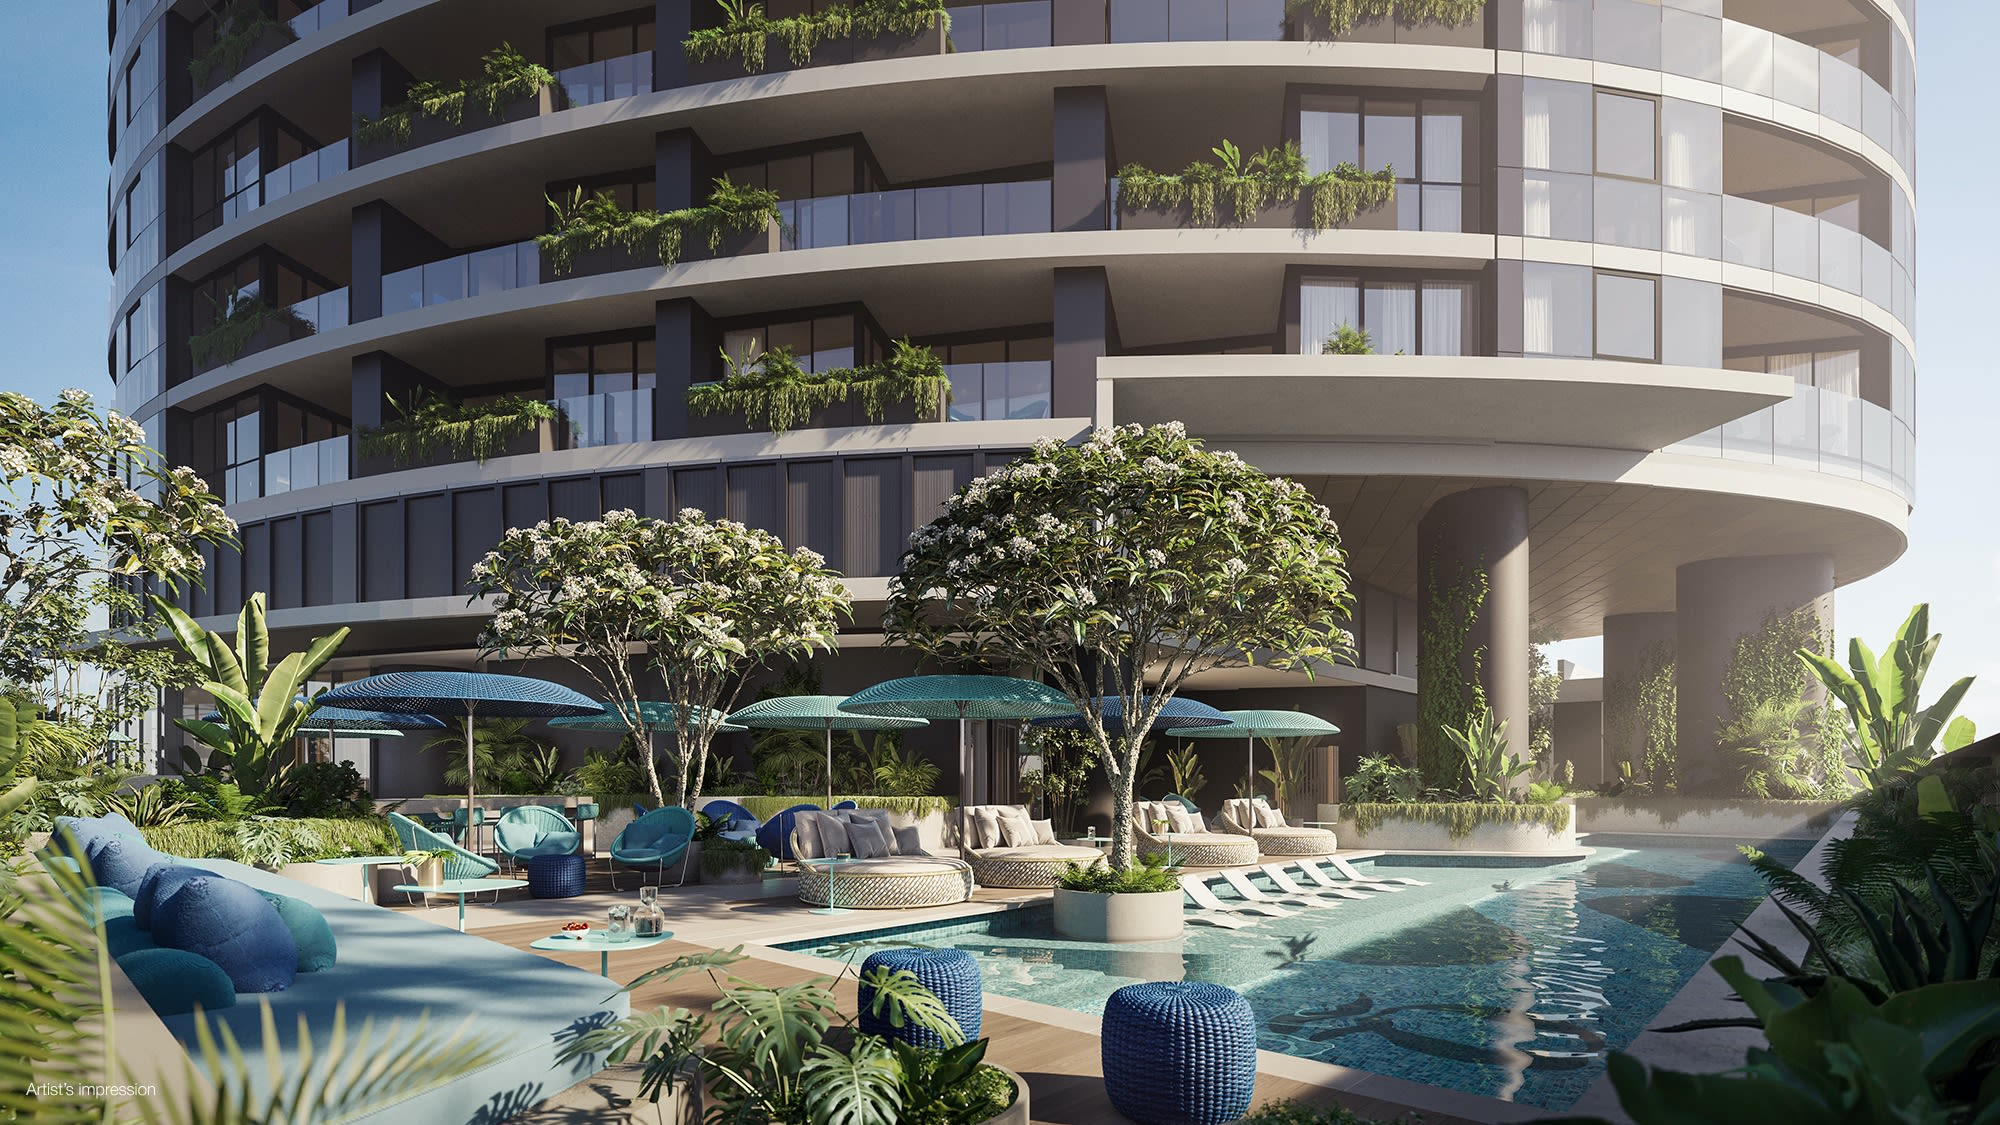 Queen's Wharf Residences gives Brisbane a World Class status!